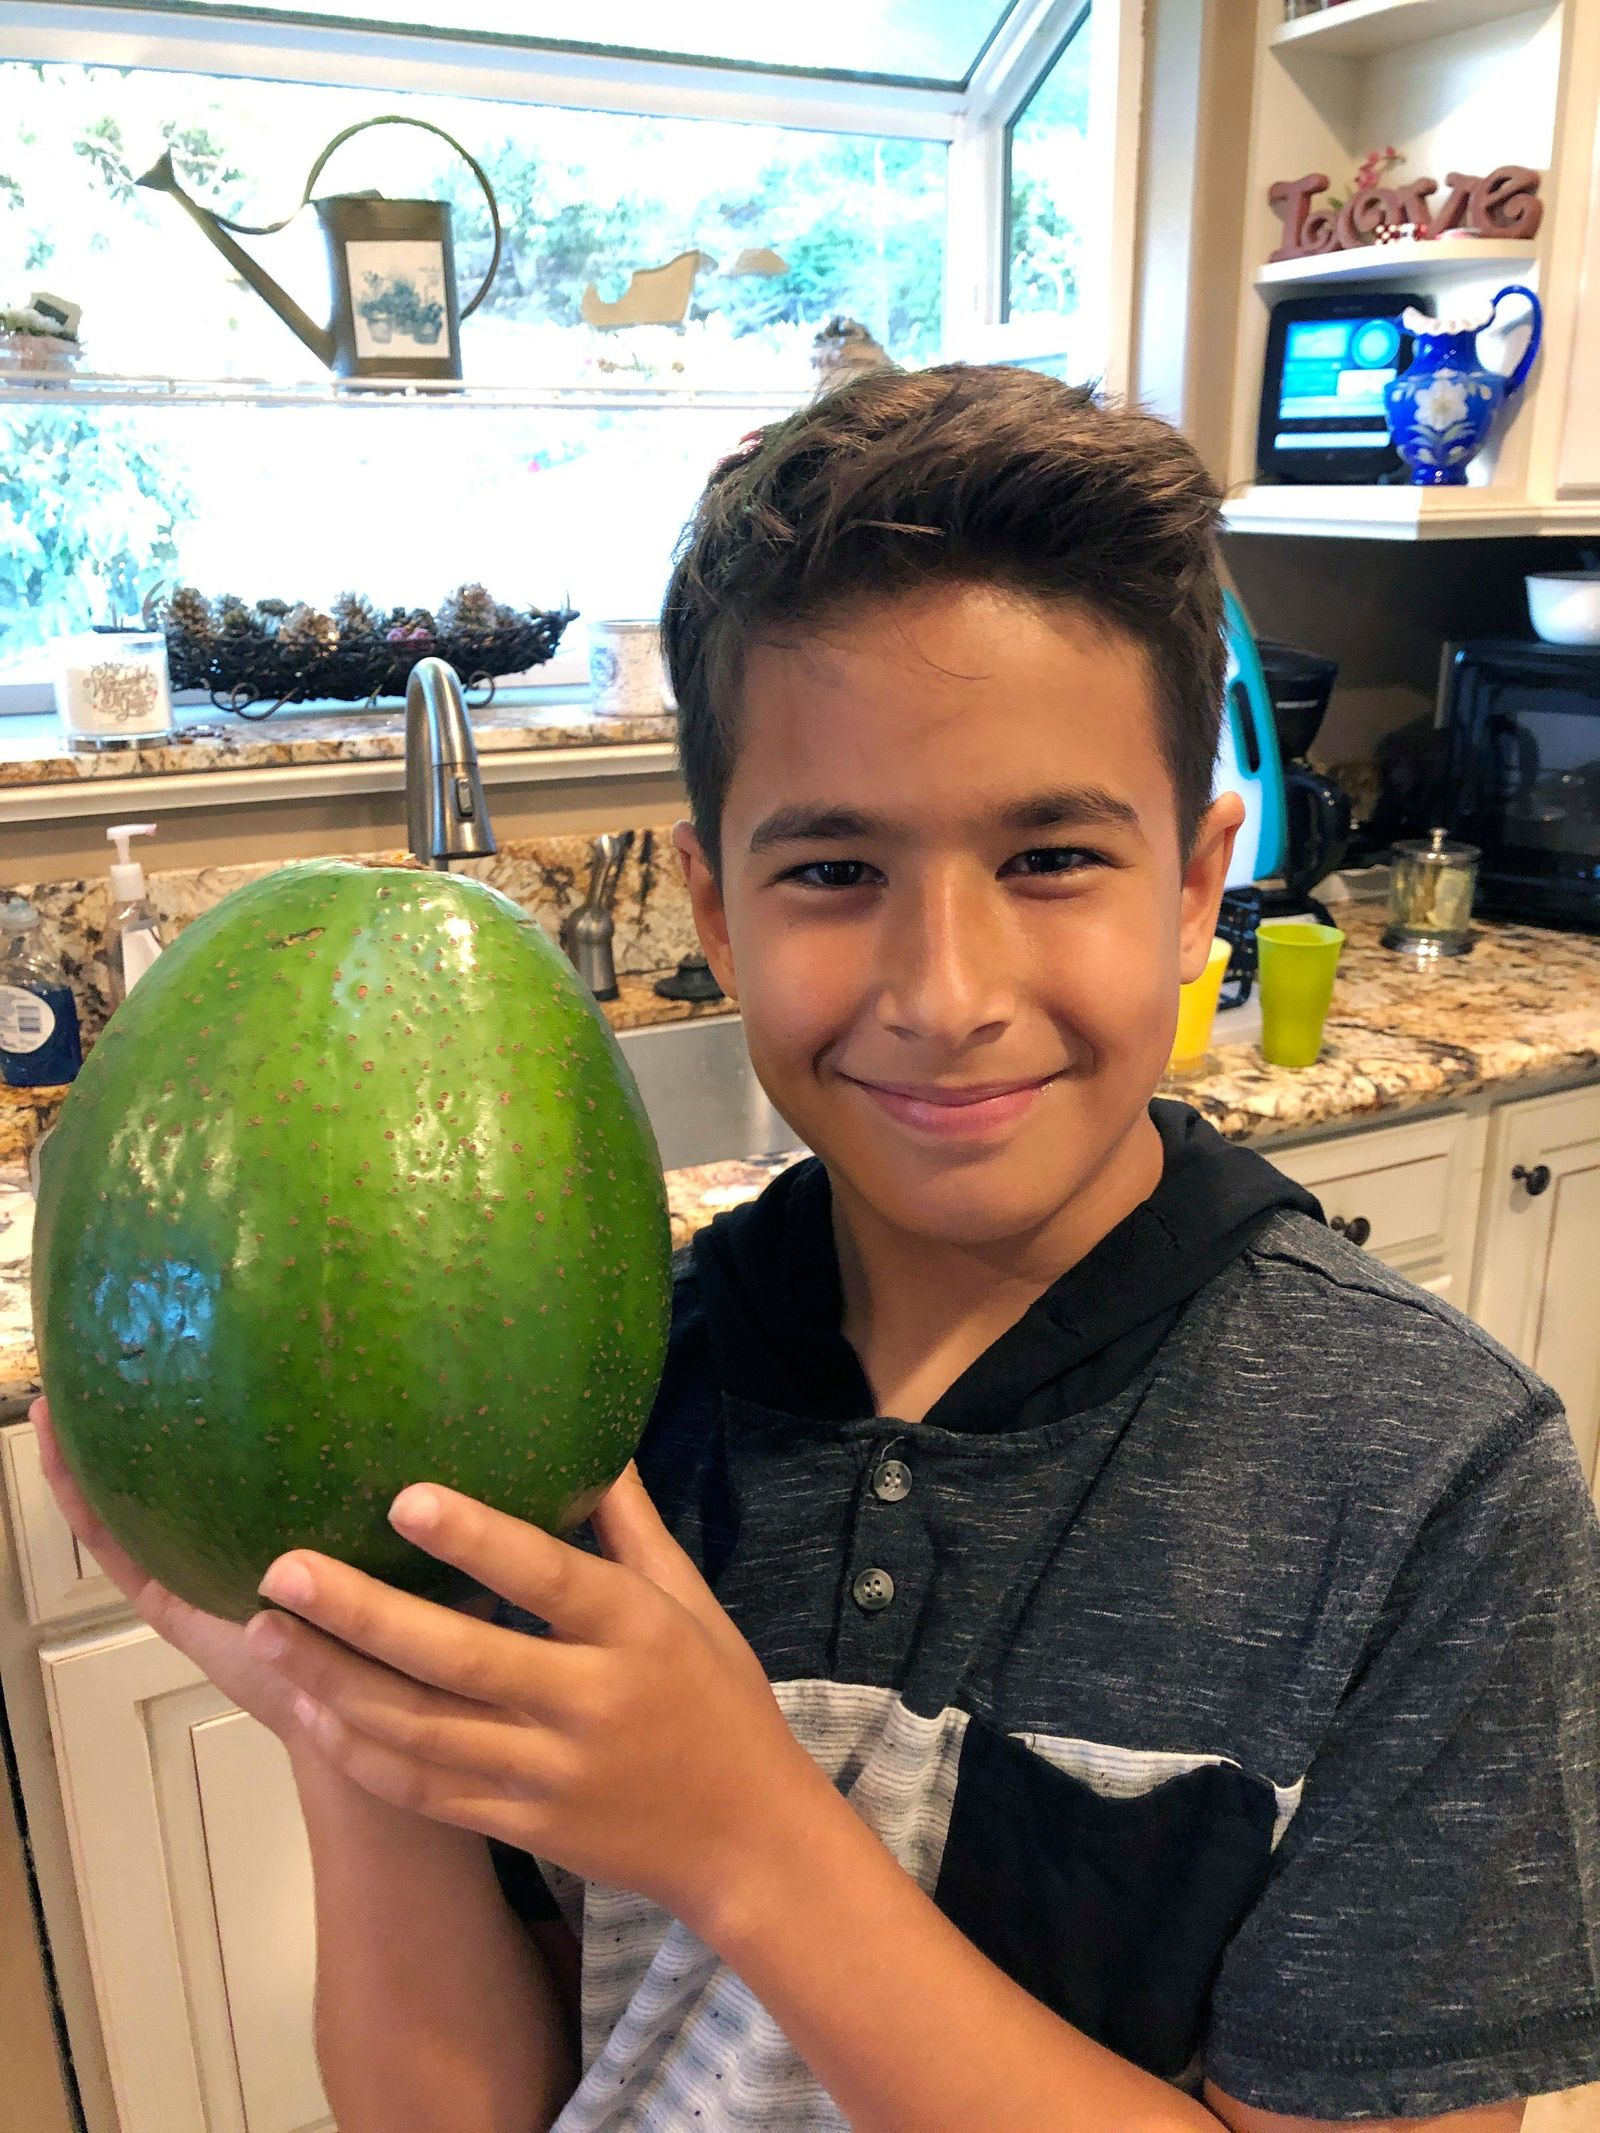 This Dec. 13, 2018 photo provided by Juliane Pokini shows Lo'ihi Pokini posing for a photo with the Guinness World Record Heaviest Avocado at Kula Country Farms in Kula,Hawaii. The Pokini family from the island of Maui received the Guinness certificate this week for the avocado weighing 5.6 pounds (2.54 kilograms), The Maui News reported Thursday, Oct. 11, 2019. (Juliane Pokini via AP)